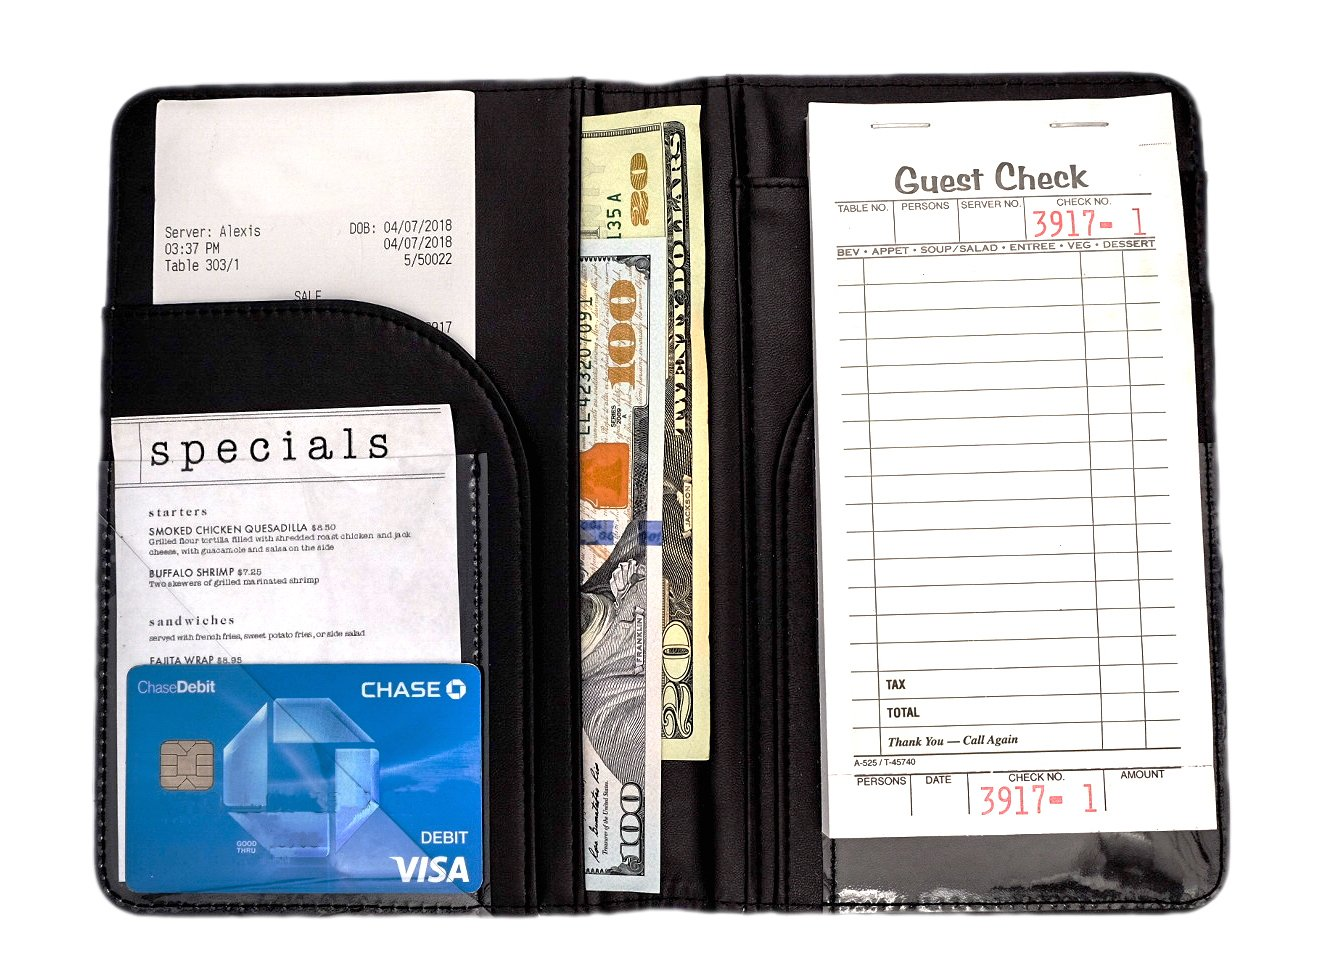 Serve-Pro Server Book - Premium Waitress Book - Server Book For Waiter Waitress Waitstaff - Waiter Bartender Organizer Wallet - Holds Guest Check and Tip Money - Detachable Order Note Pad Included